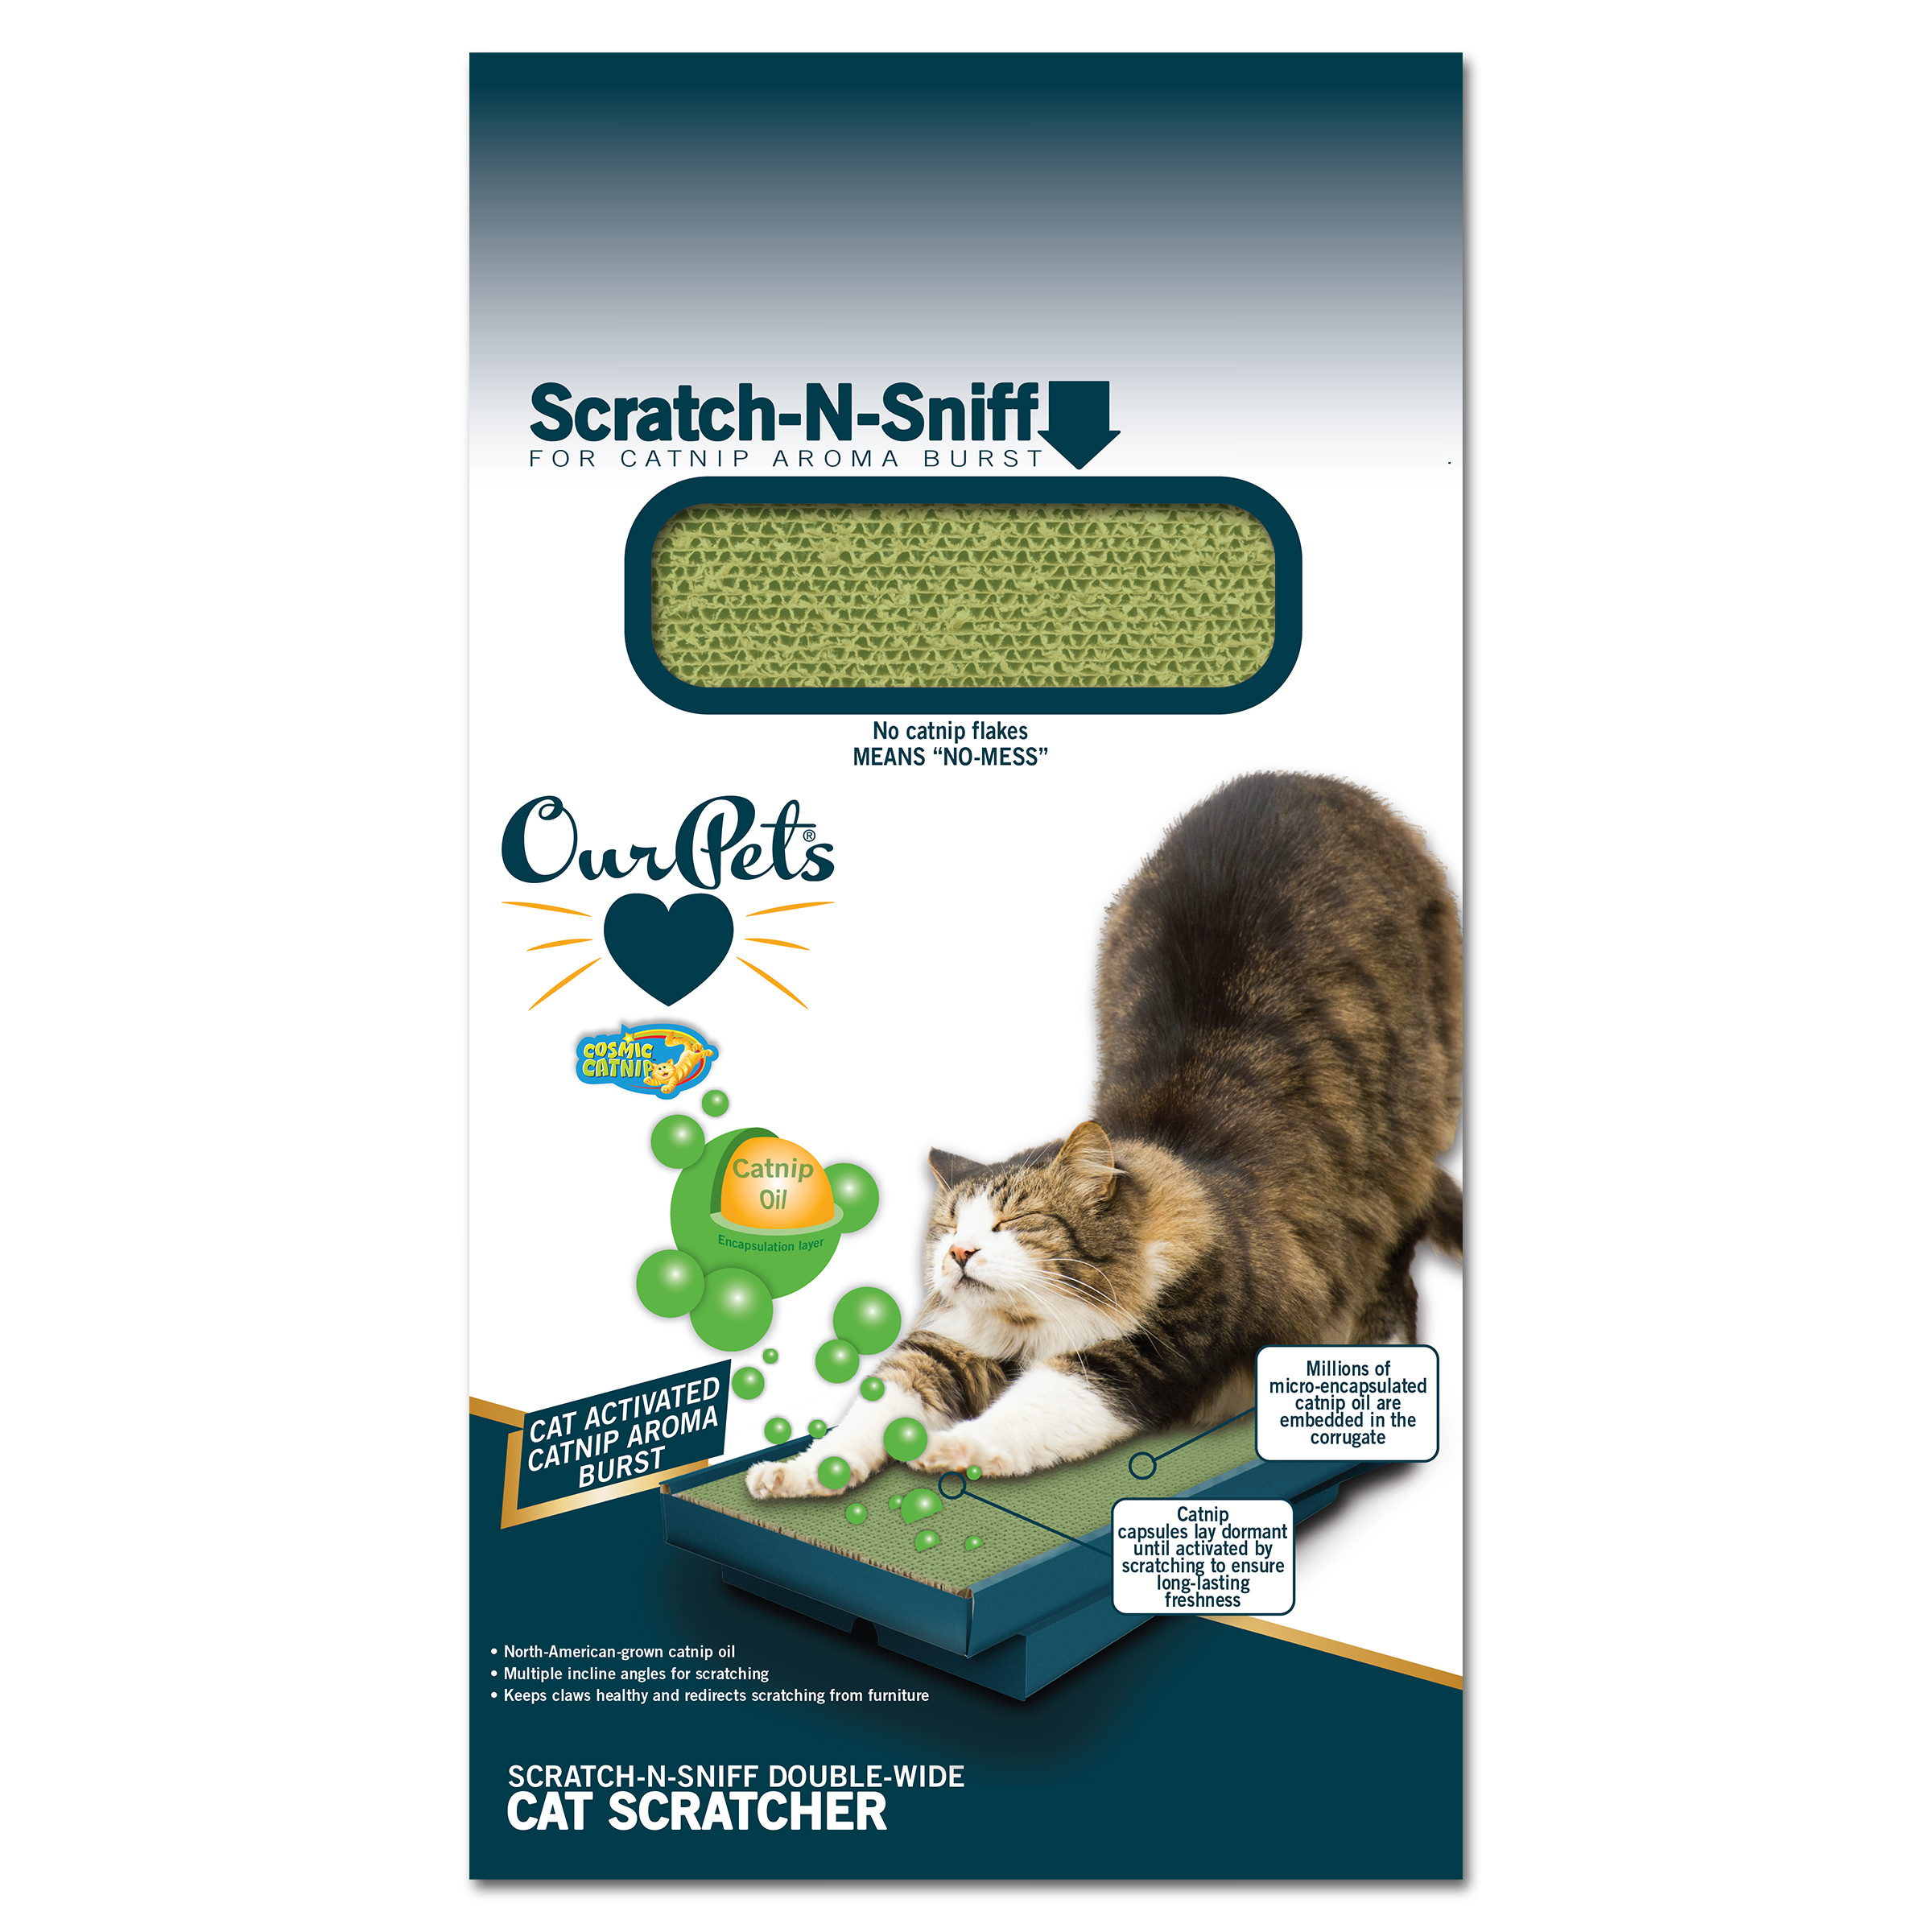 OurPets Scratch-N-Sniff Cat Scratcher Double-Wide with Microencapsulated Catnip